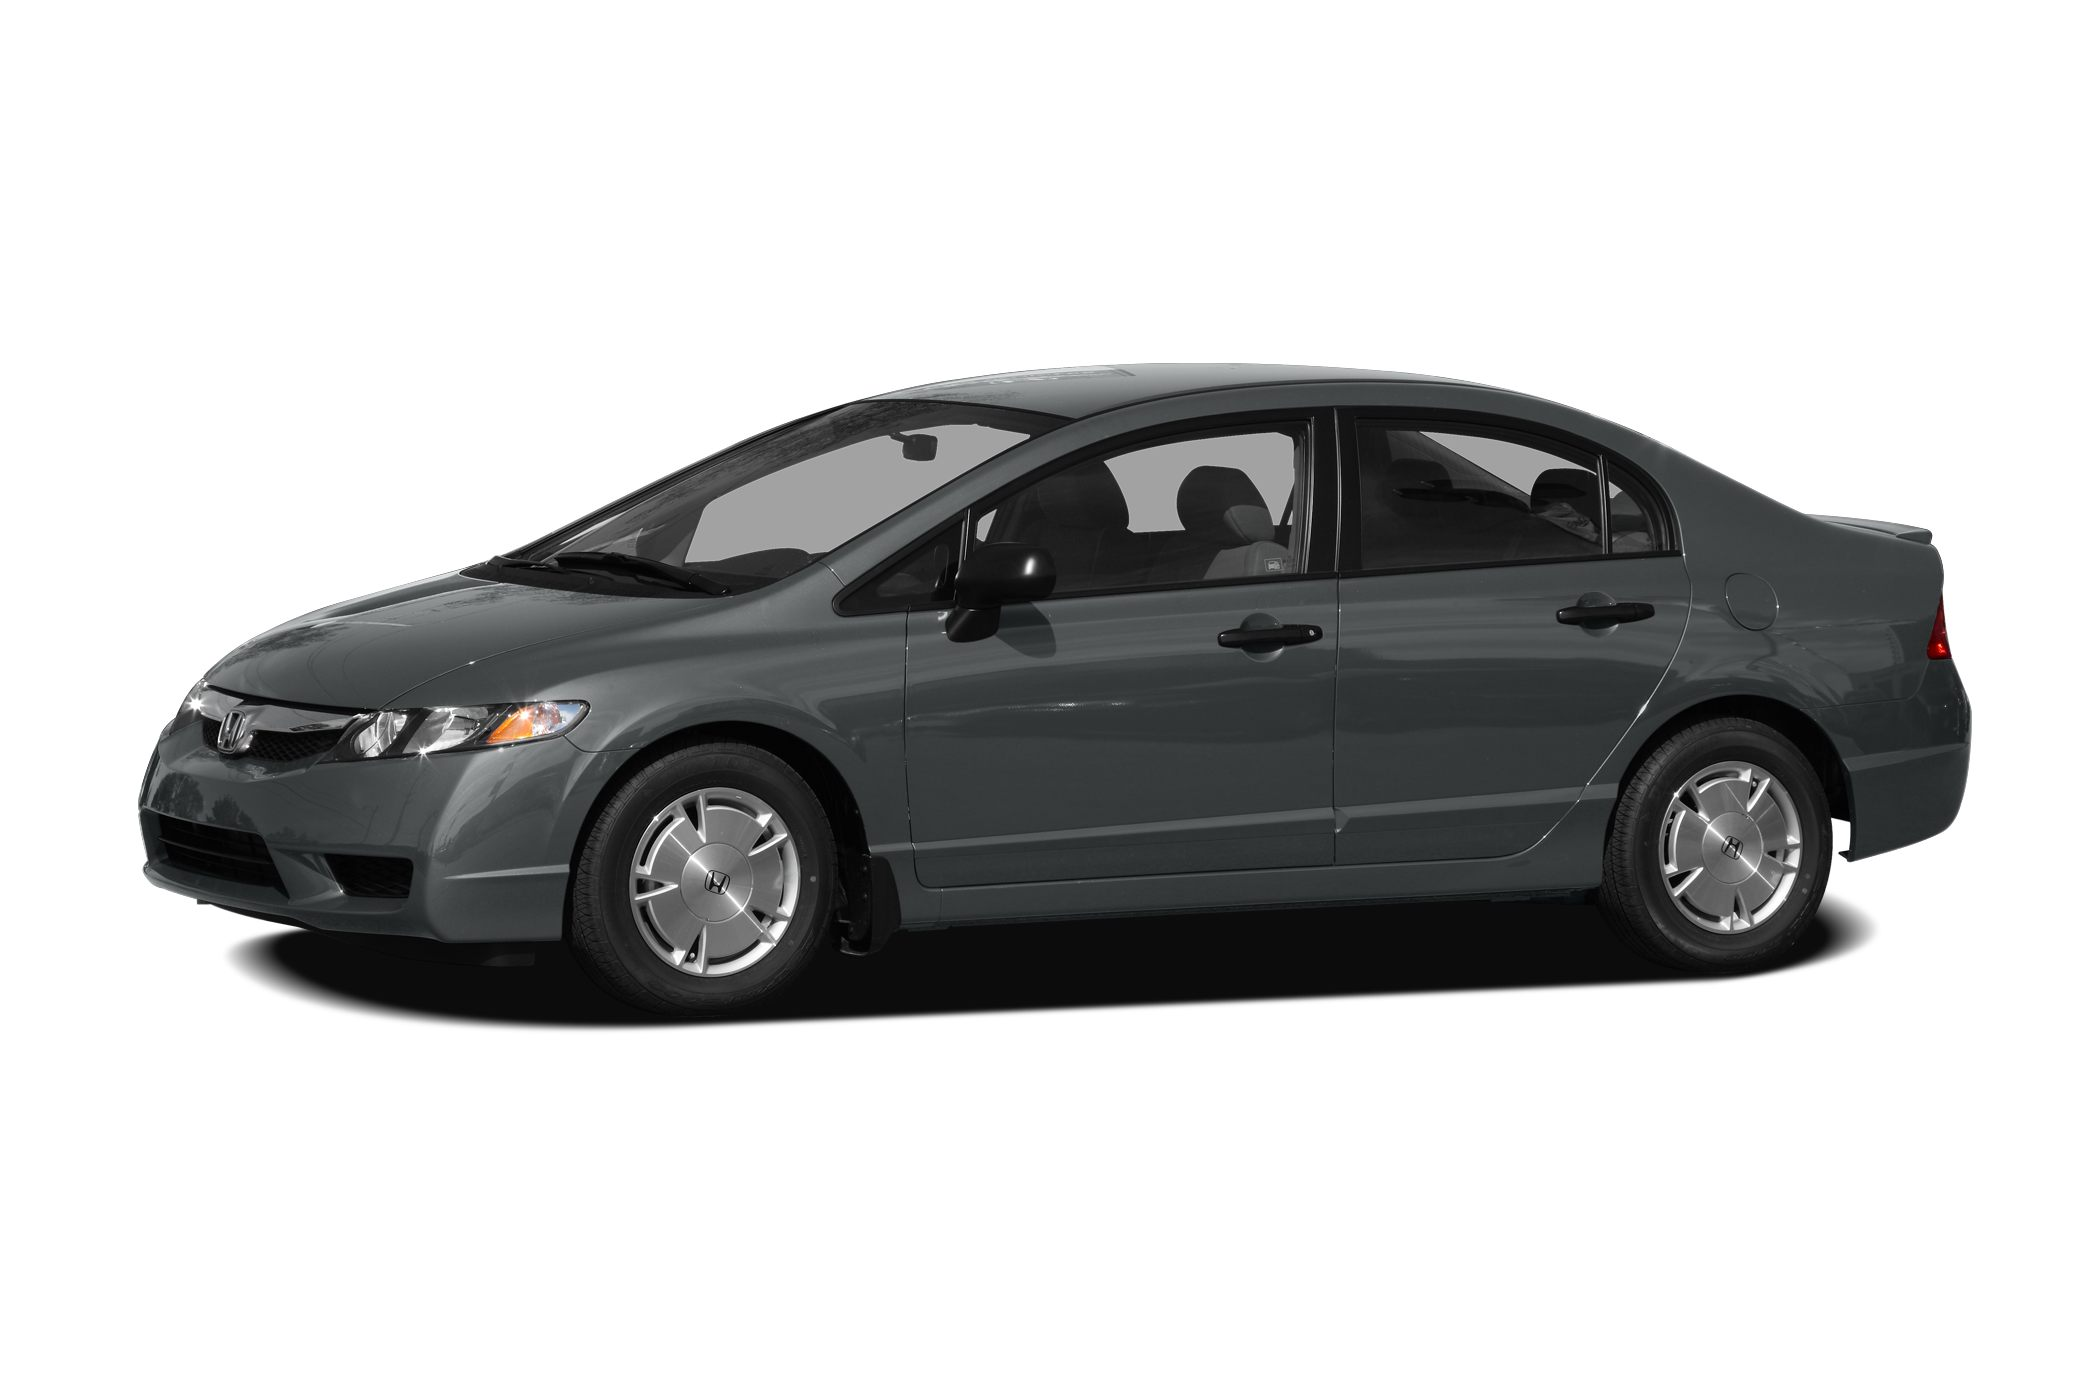 2010 Honda Civic LX Sedan for sale in Bronx for $10,995 with 35,526 miles